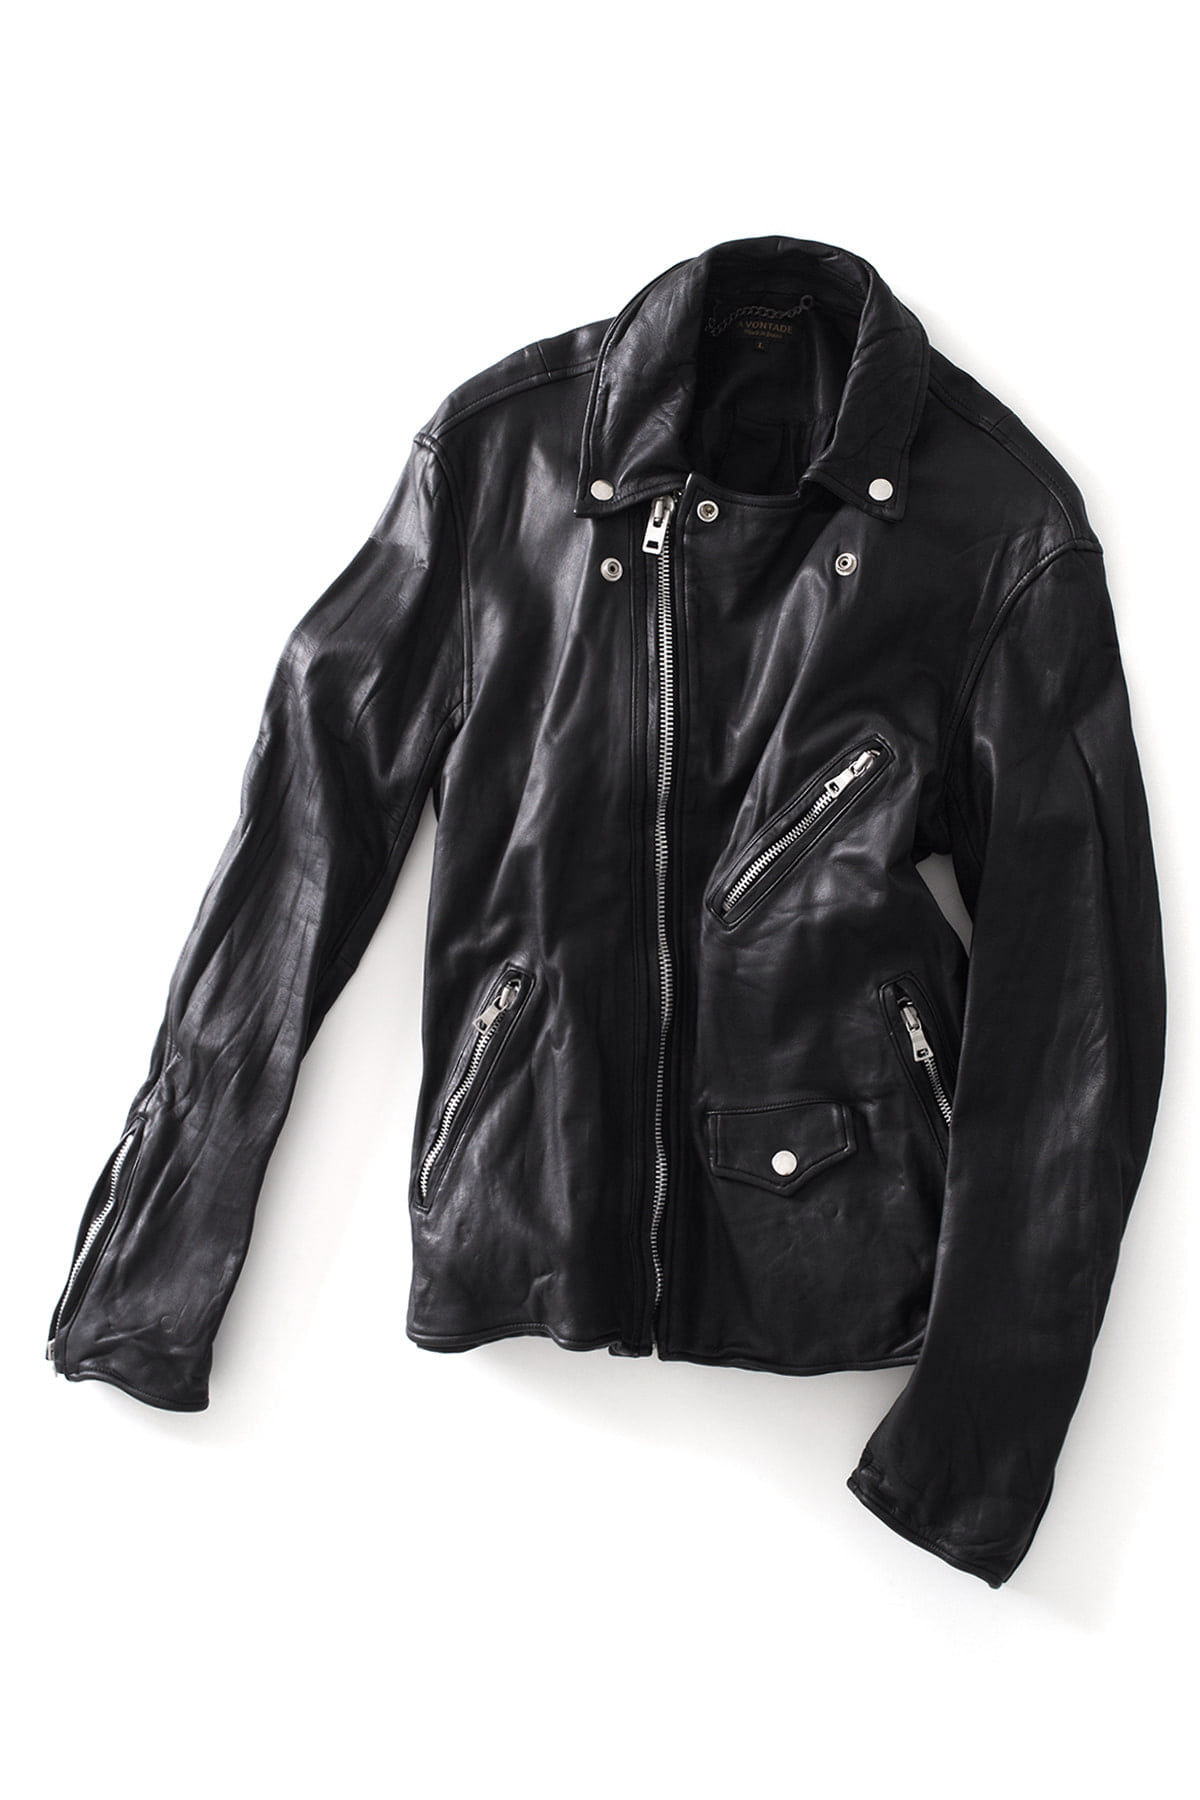 A vontade : Road Master Jacket (Black)